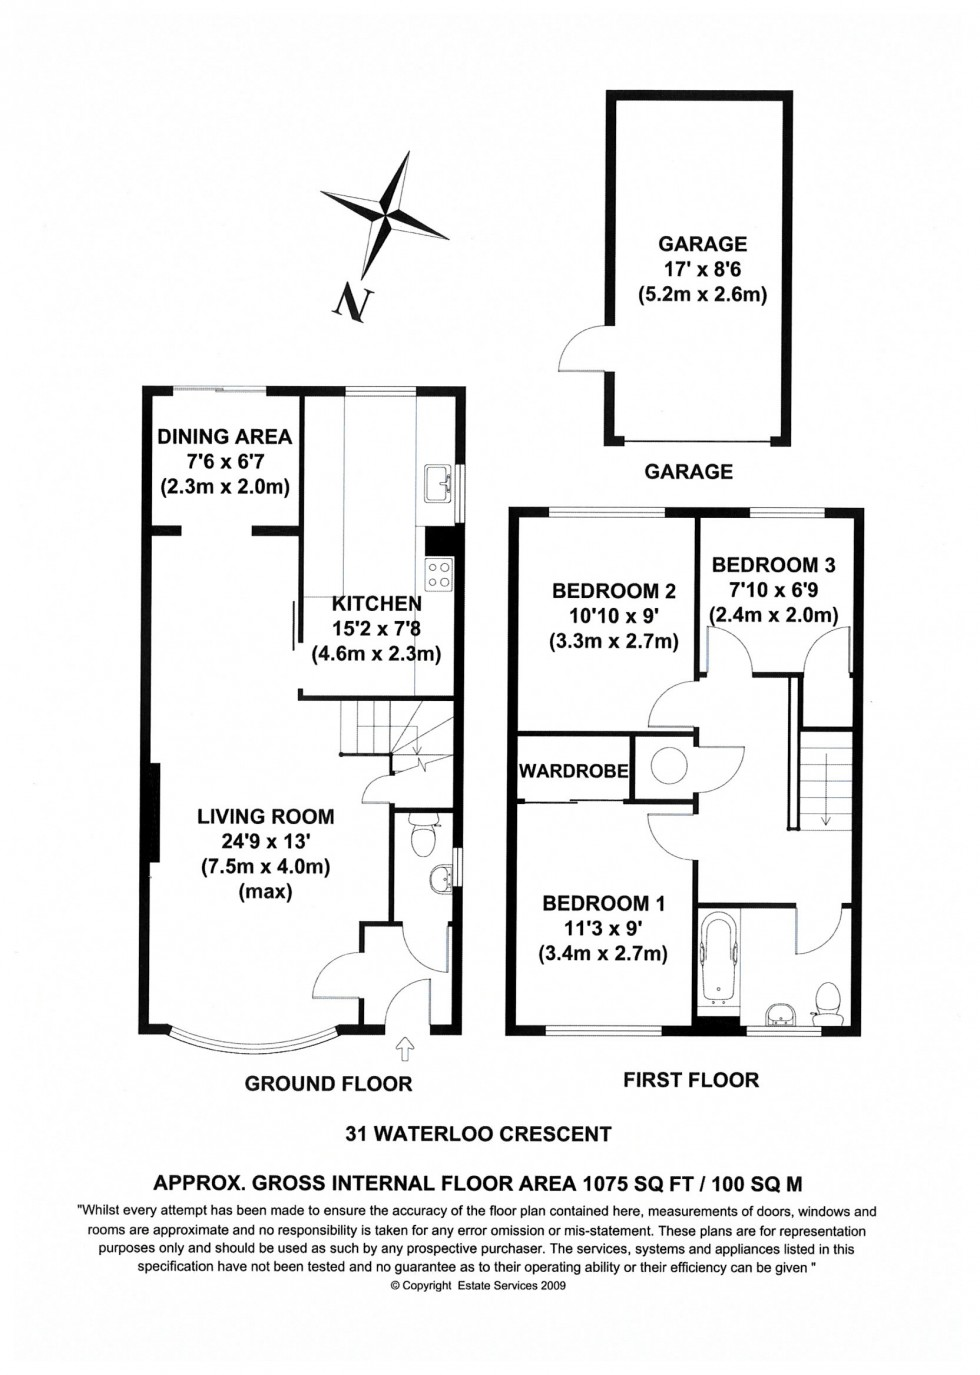 Floorplan for Waterloo Crescent, Wokingham